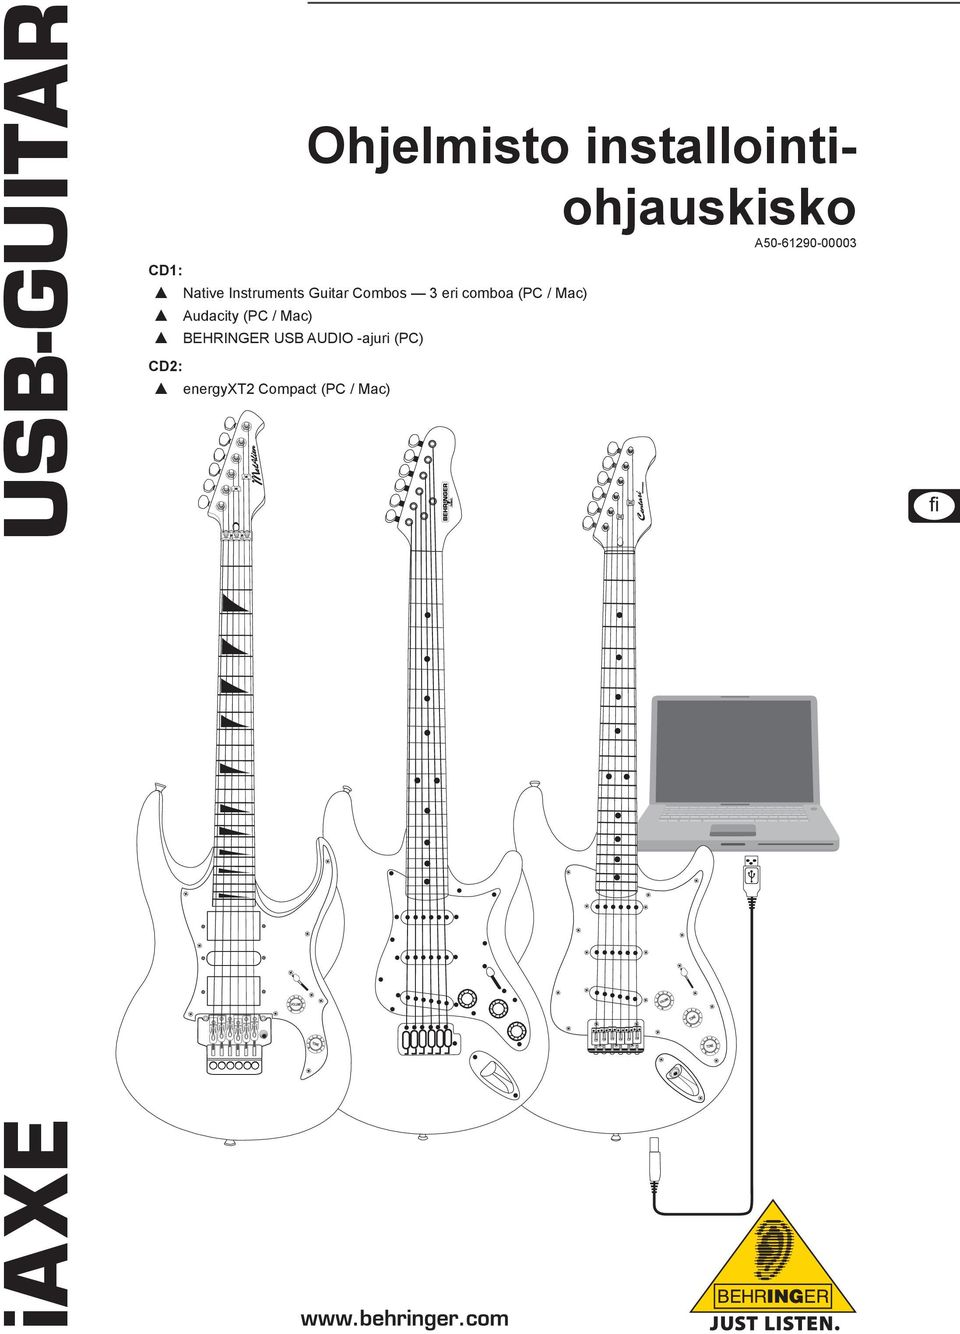 Instruments Guitar Combos 3 eri comboa (PC / Mac)